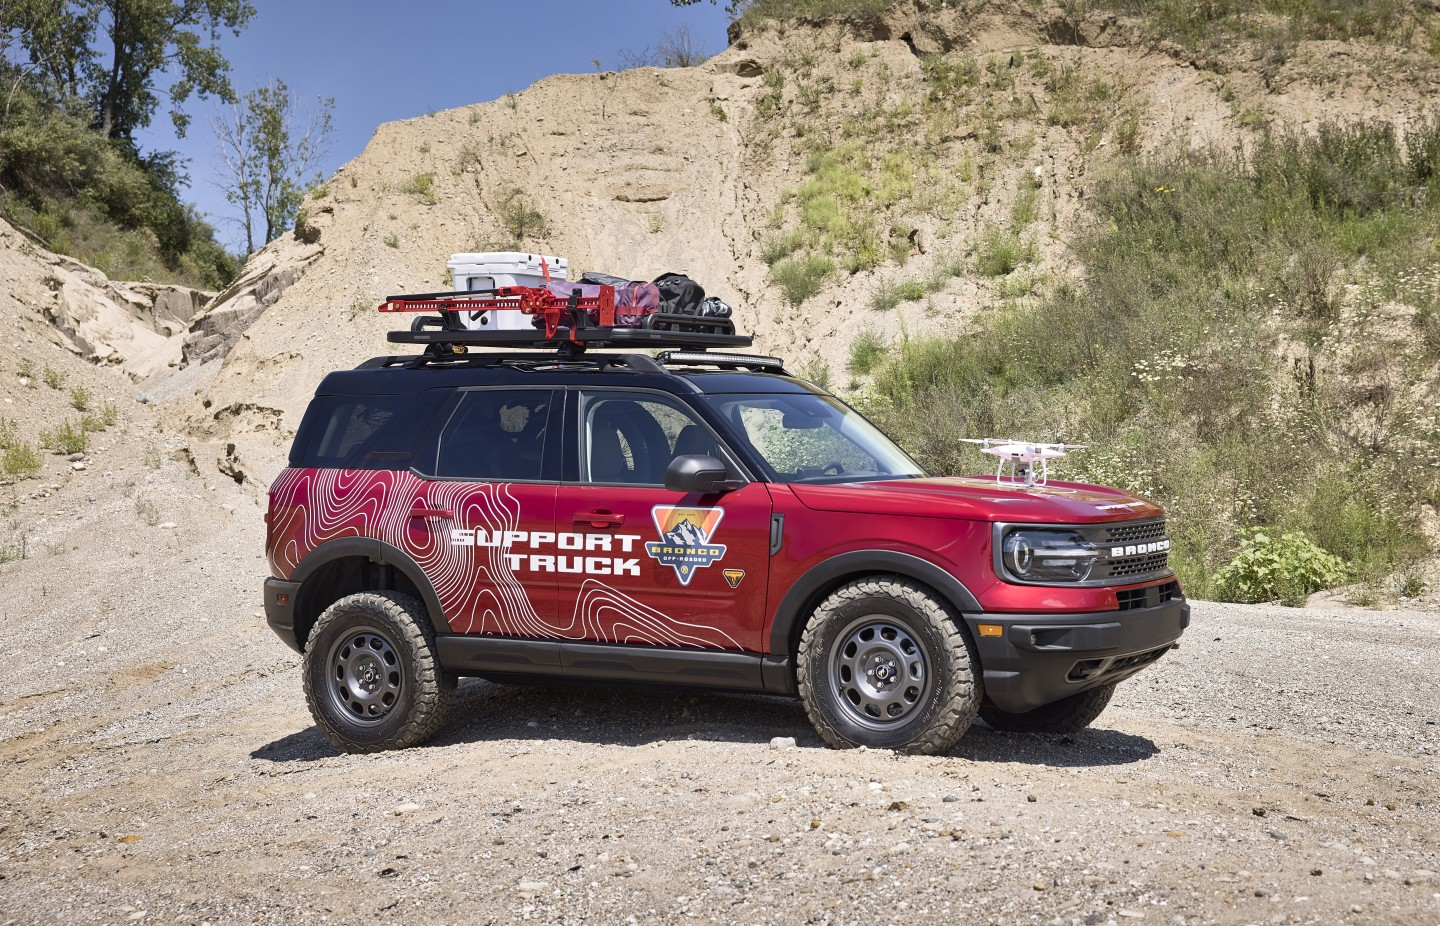 A concept with a mission, the Bronco Sport Off-Roadeo Adventure Patrol is designed to provide support at Ford's series of Bronco Off-Roadeo customer events